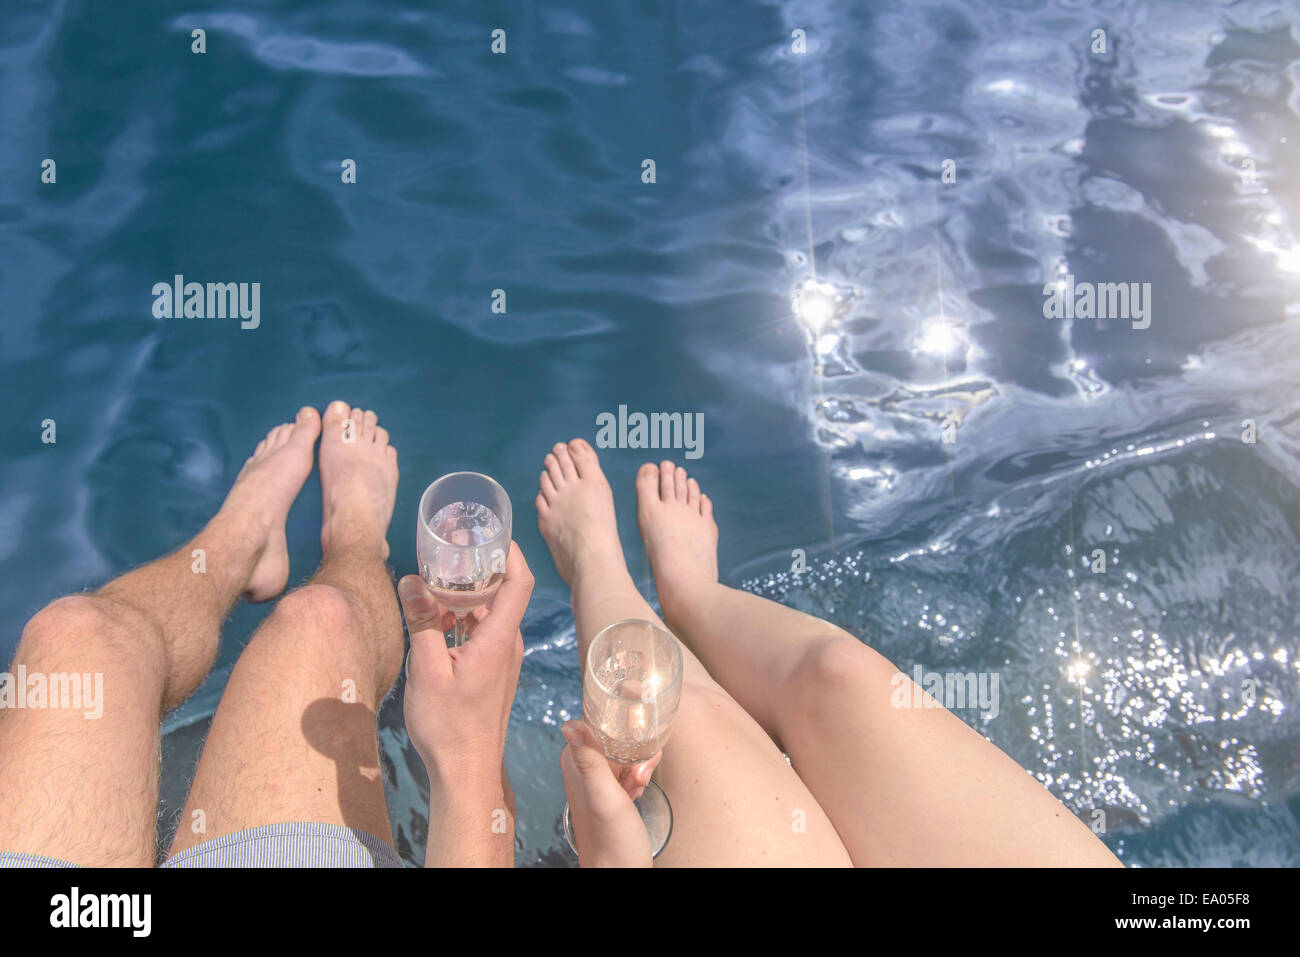 Young barefoot couple holding champagne glasses over sunlit lake, overhead view - Stock Image